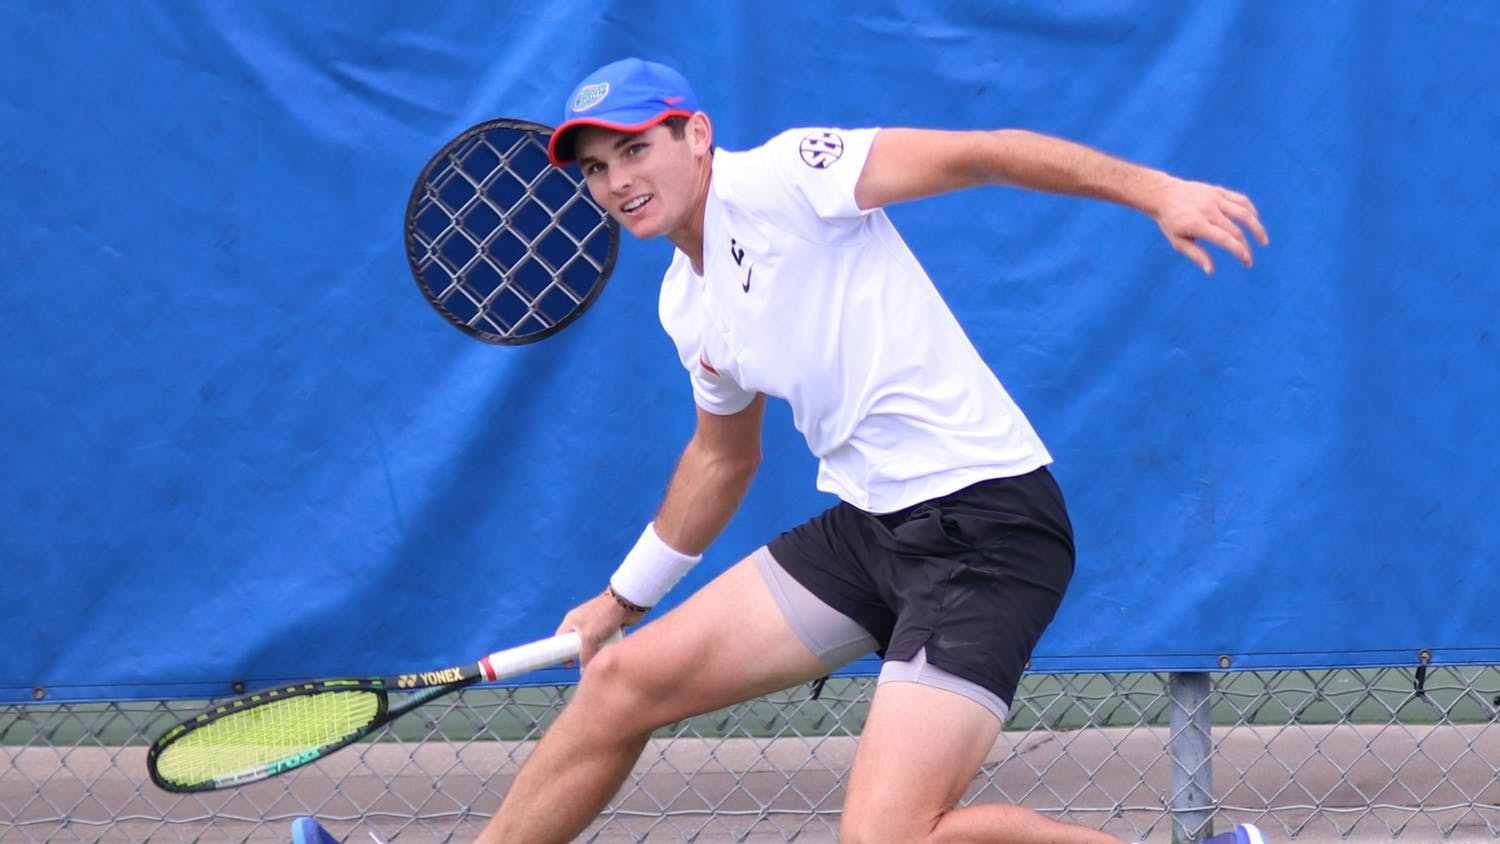 Gators men's tennis will head westward to continue a three-game win streak. Photo from UF-Auburn match Feb. 21.